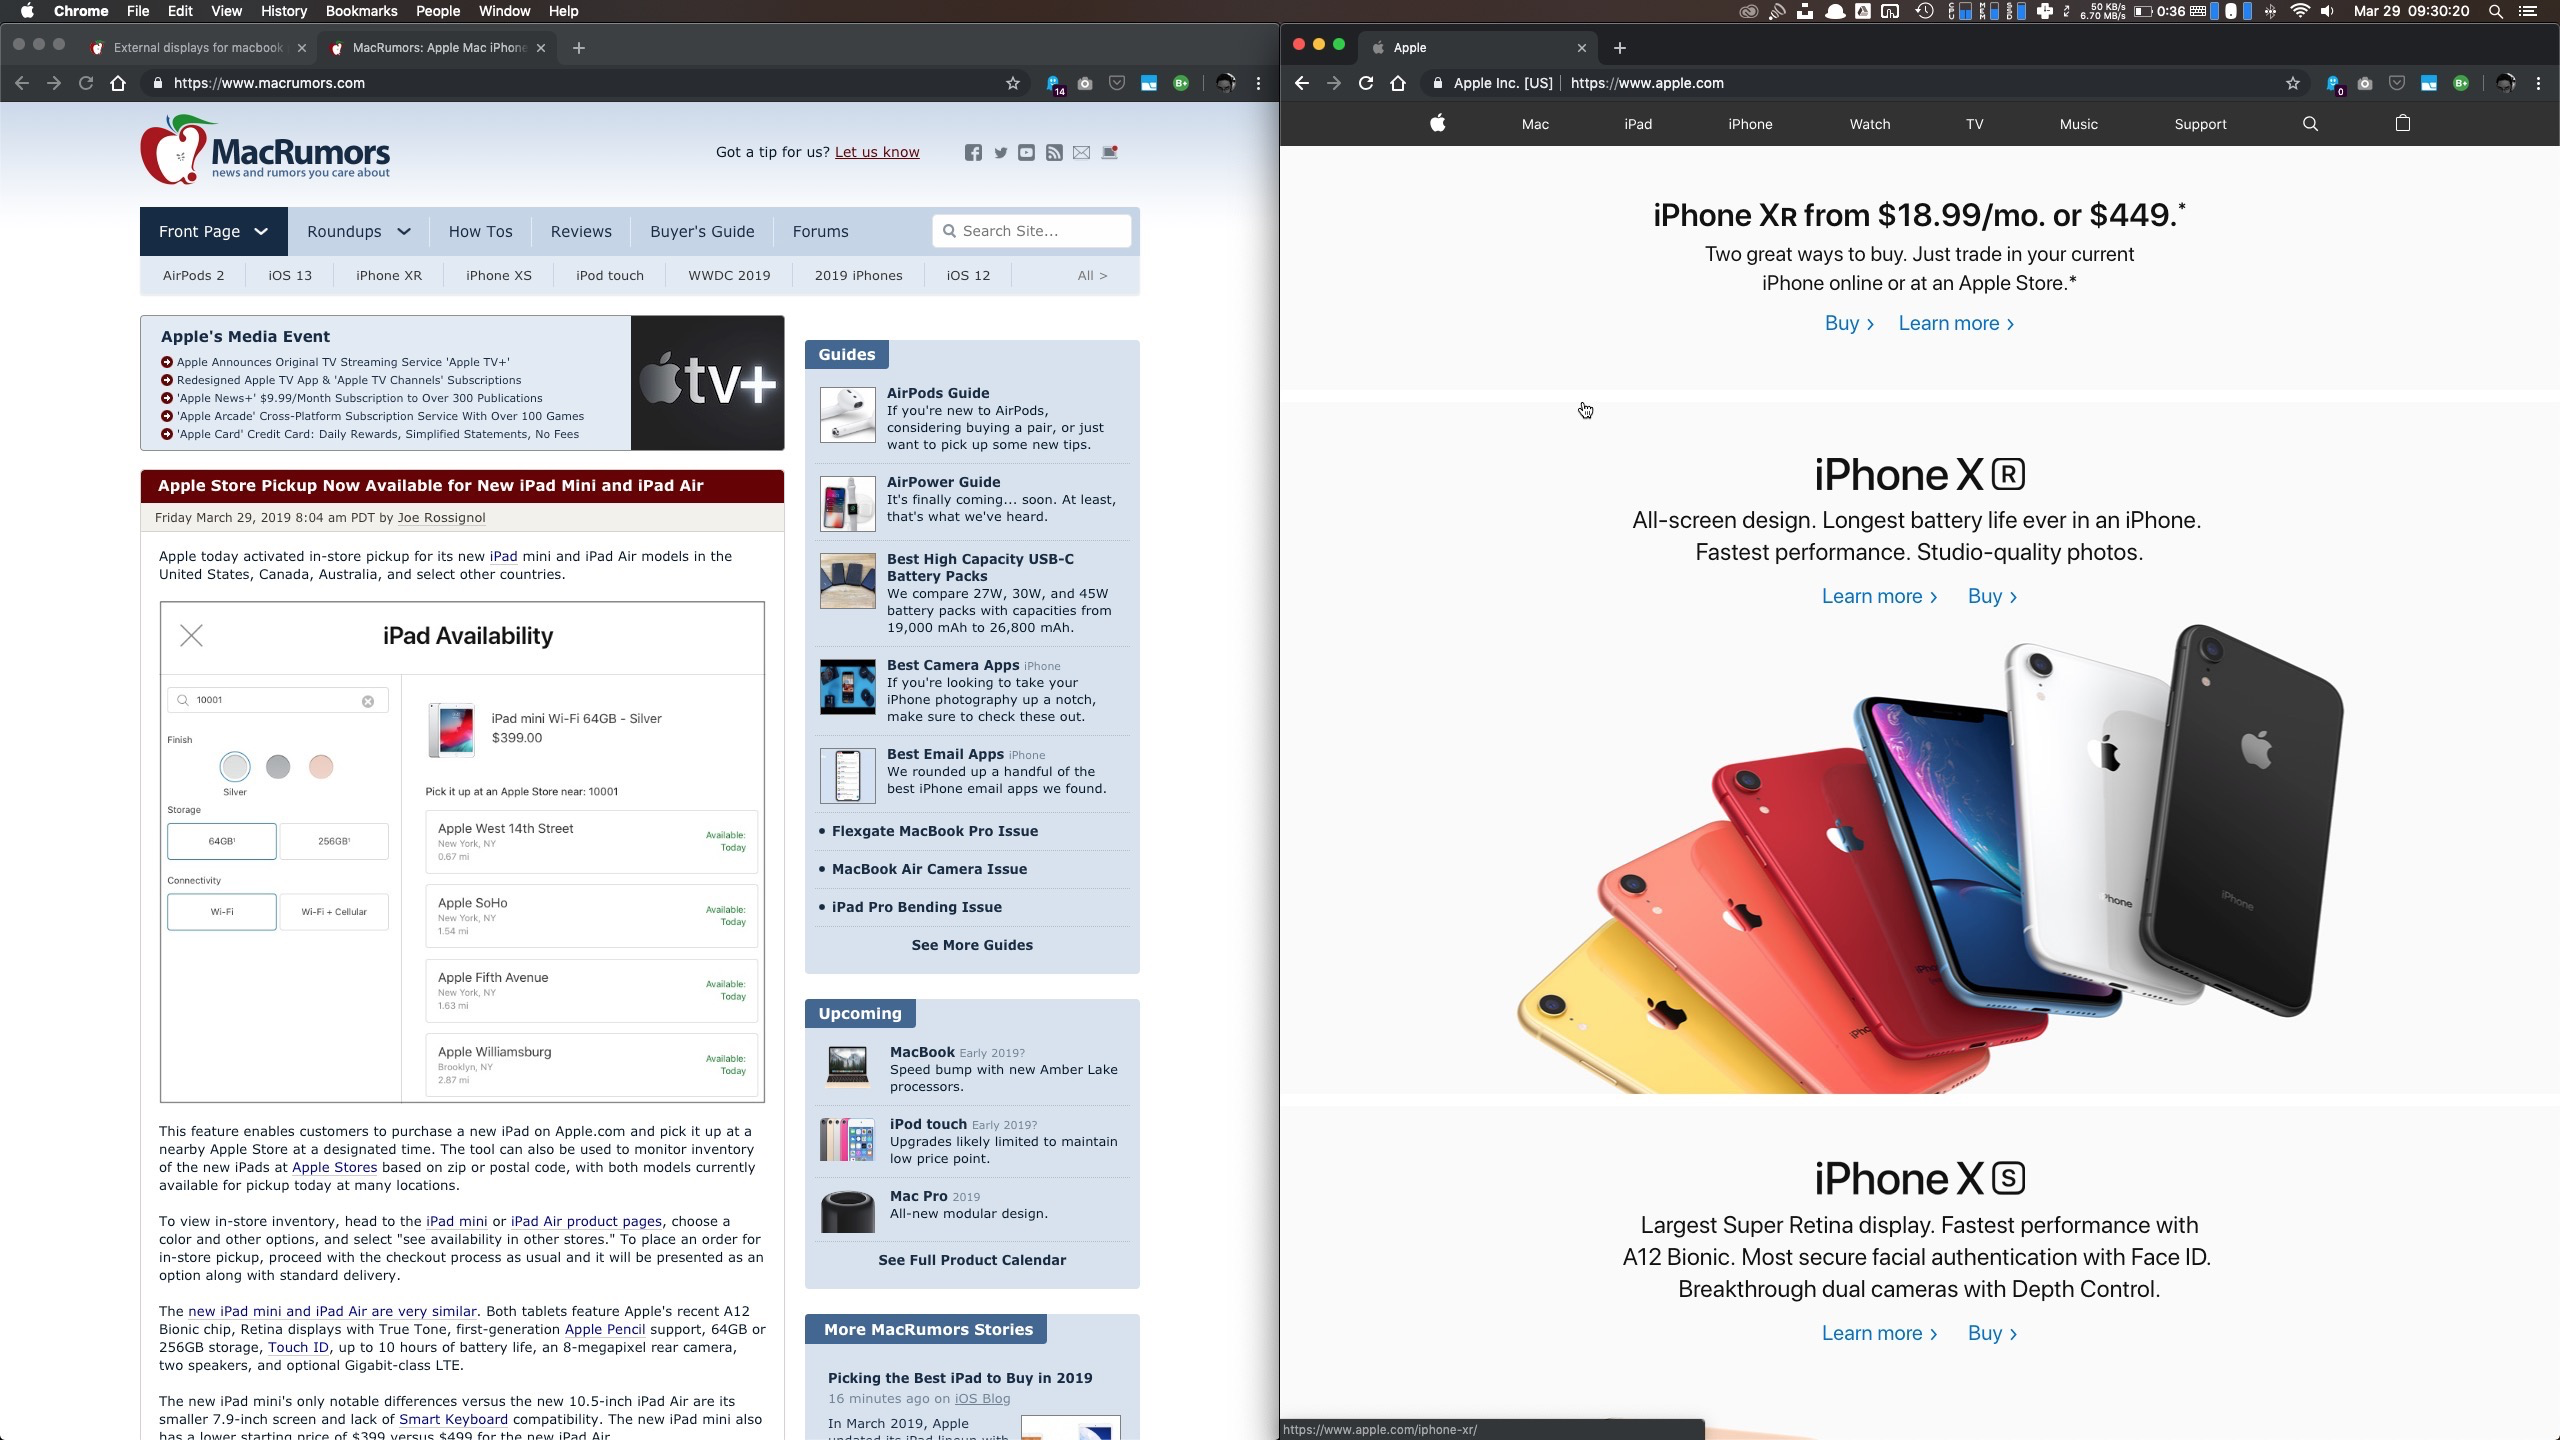 upload_2019-3-29_9-31-10.png